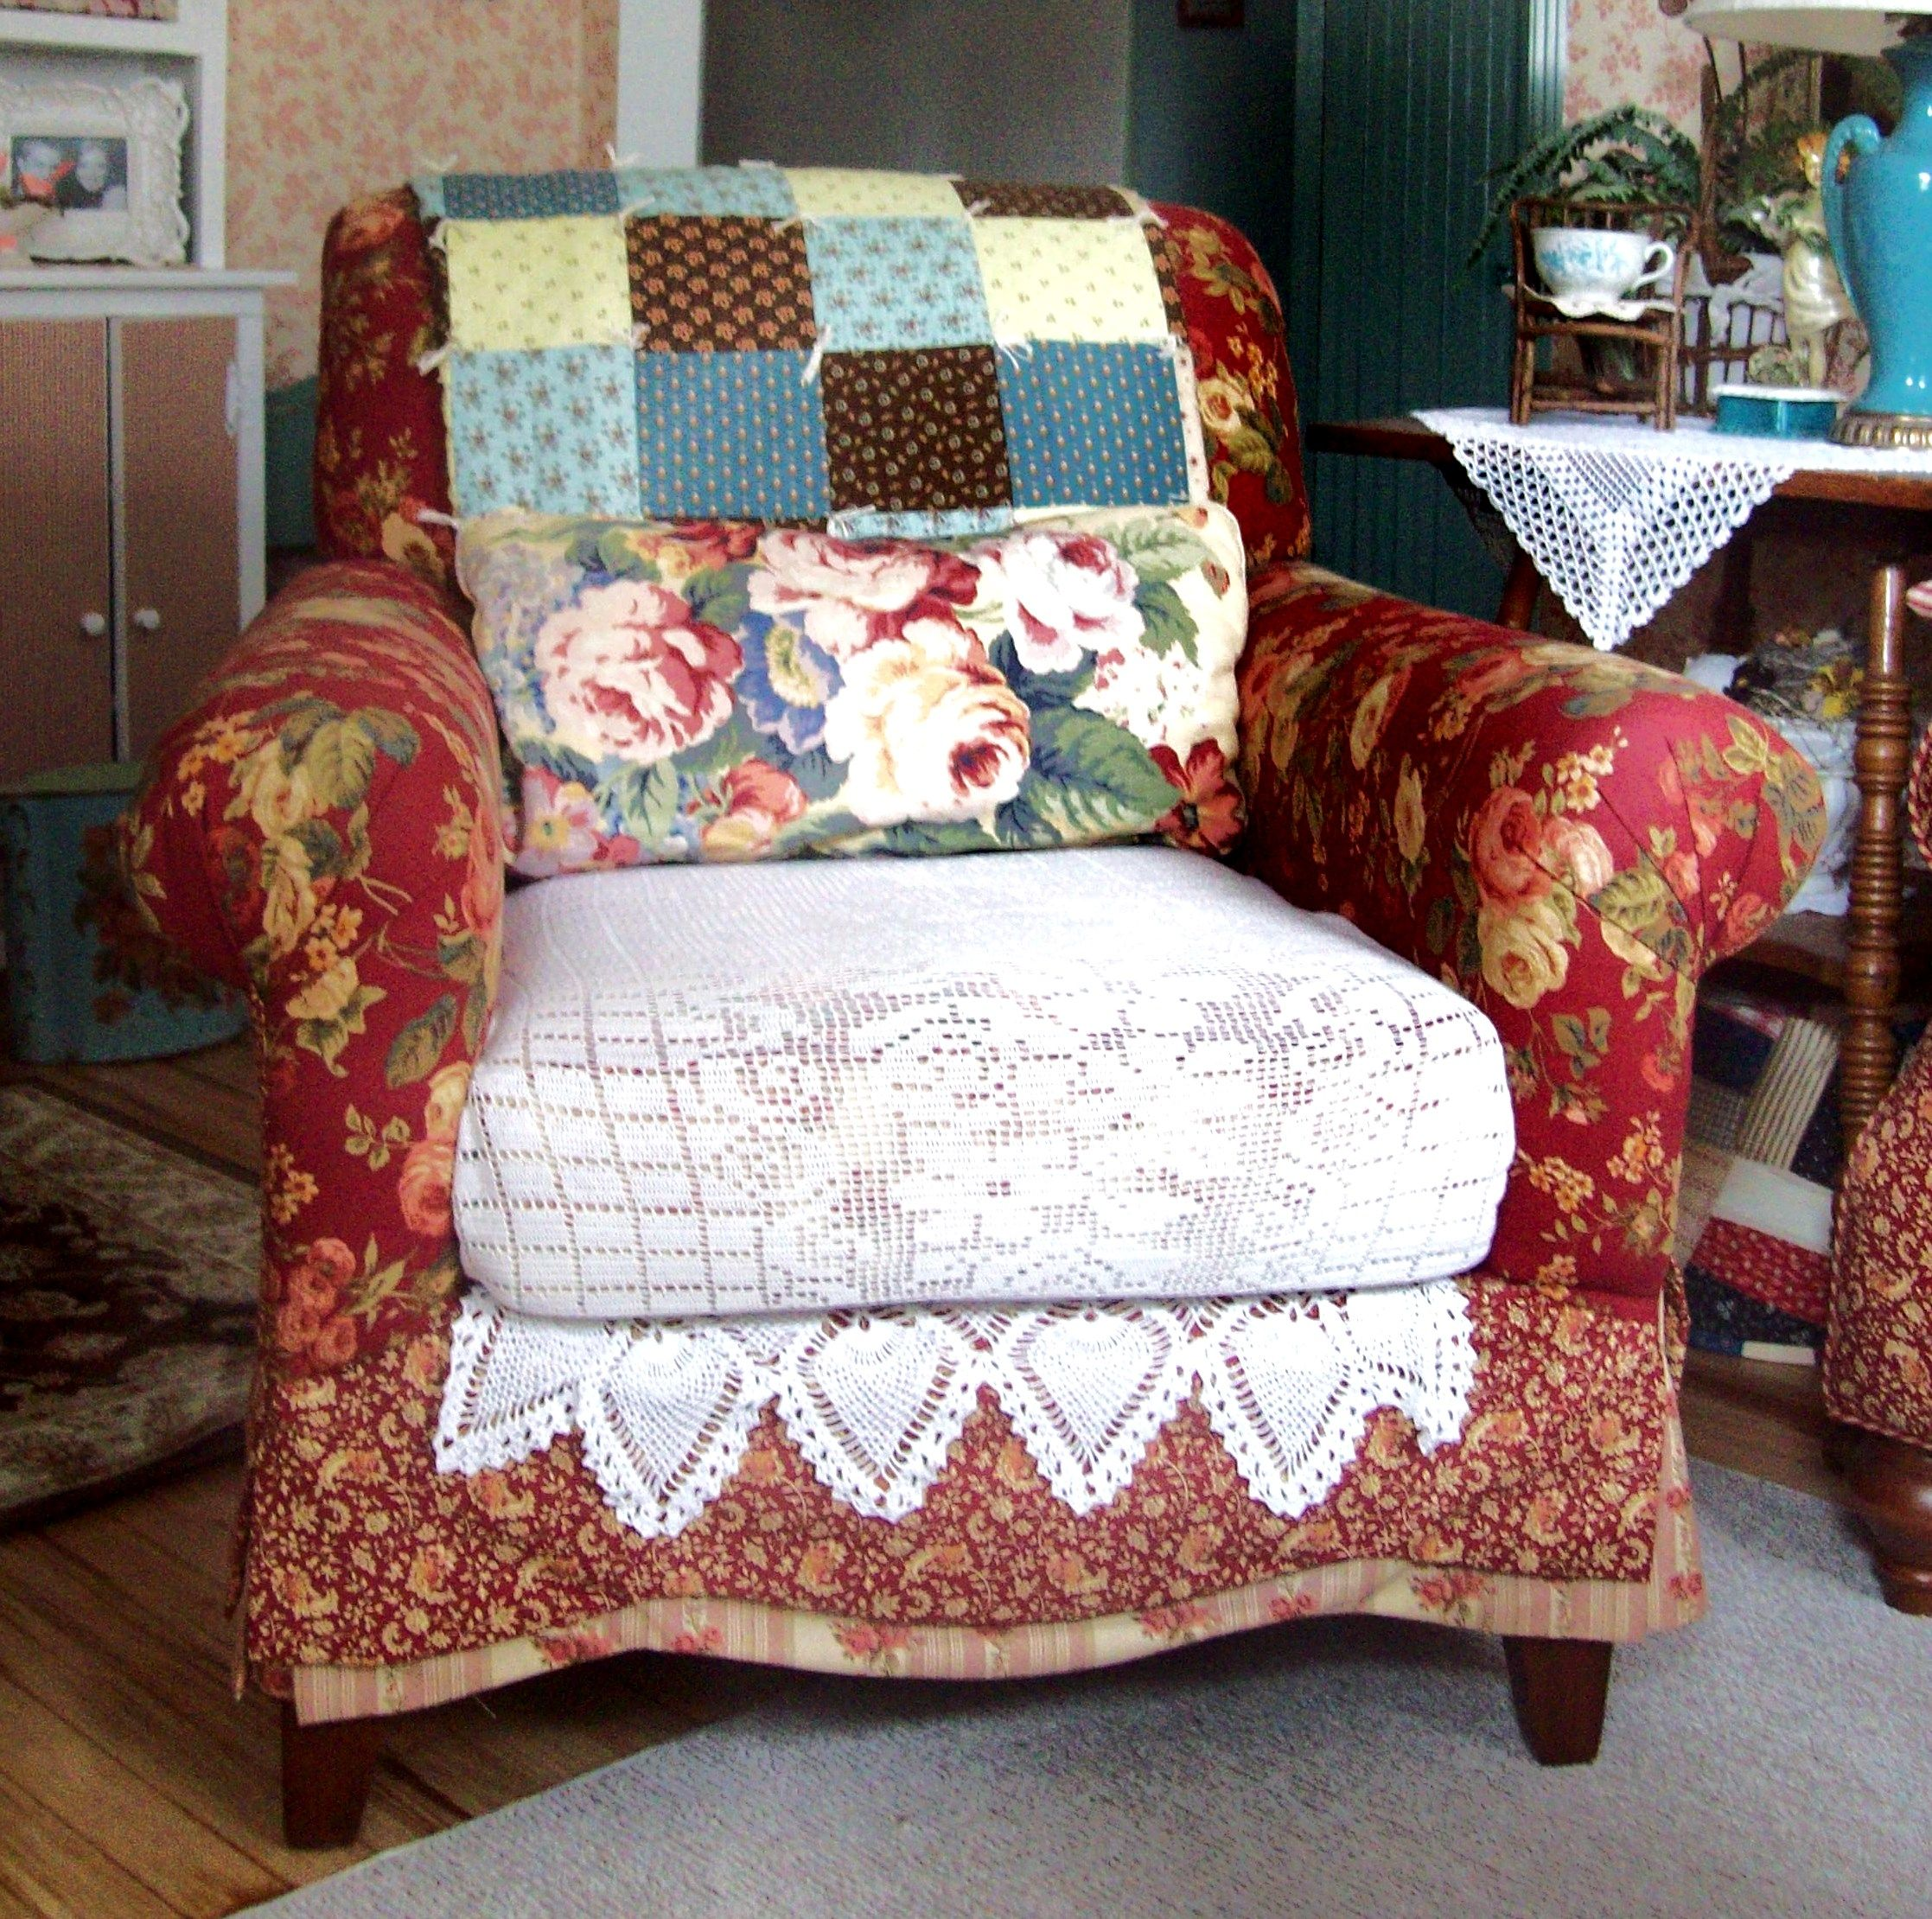 Red cottage chair just needs one of those big ottomans to go